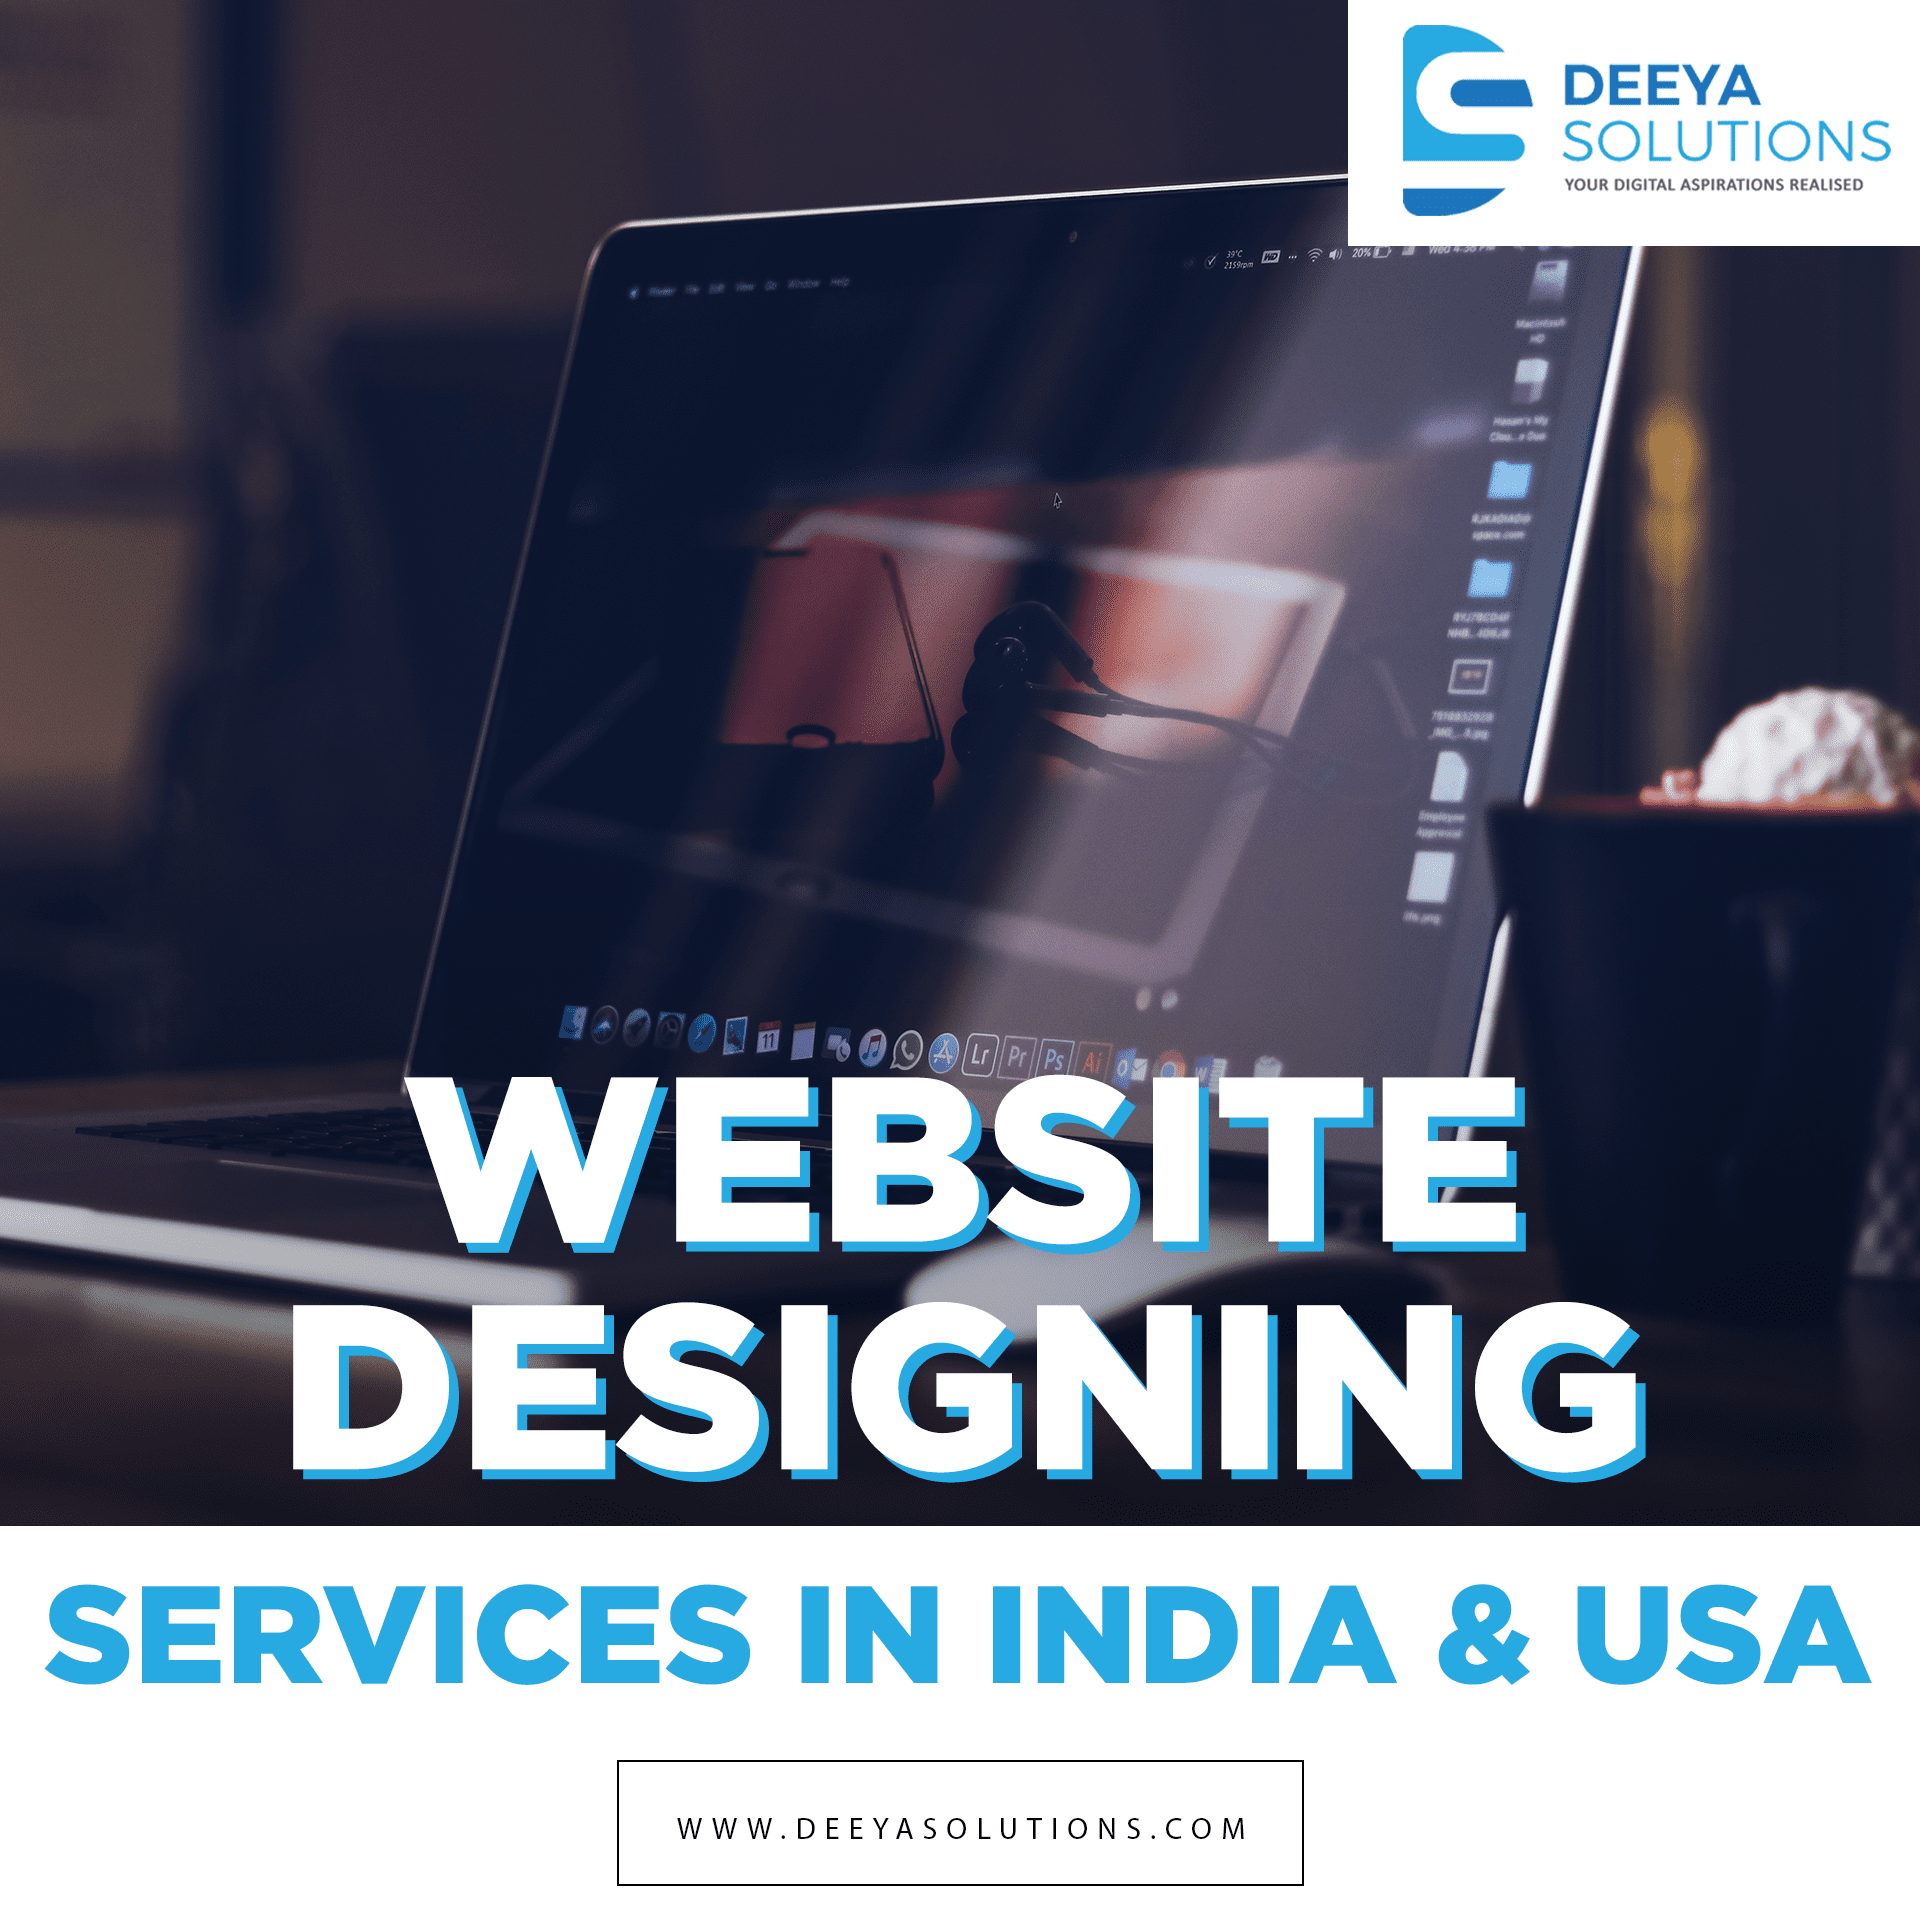 Website Designing Services in India & USA